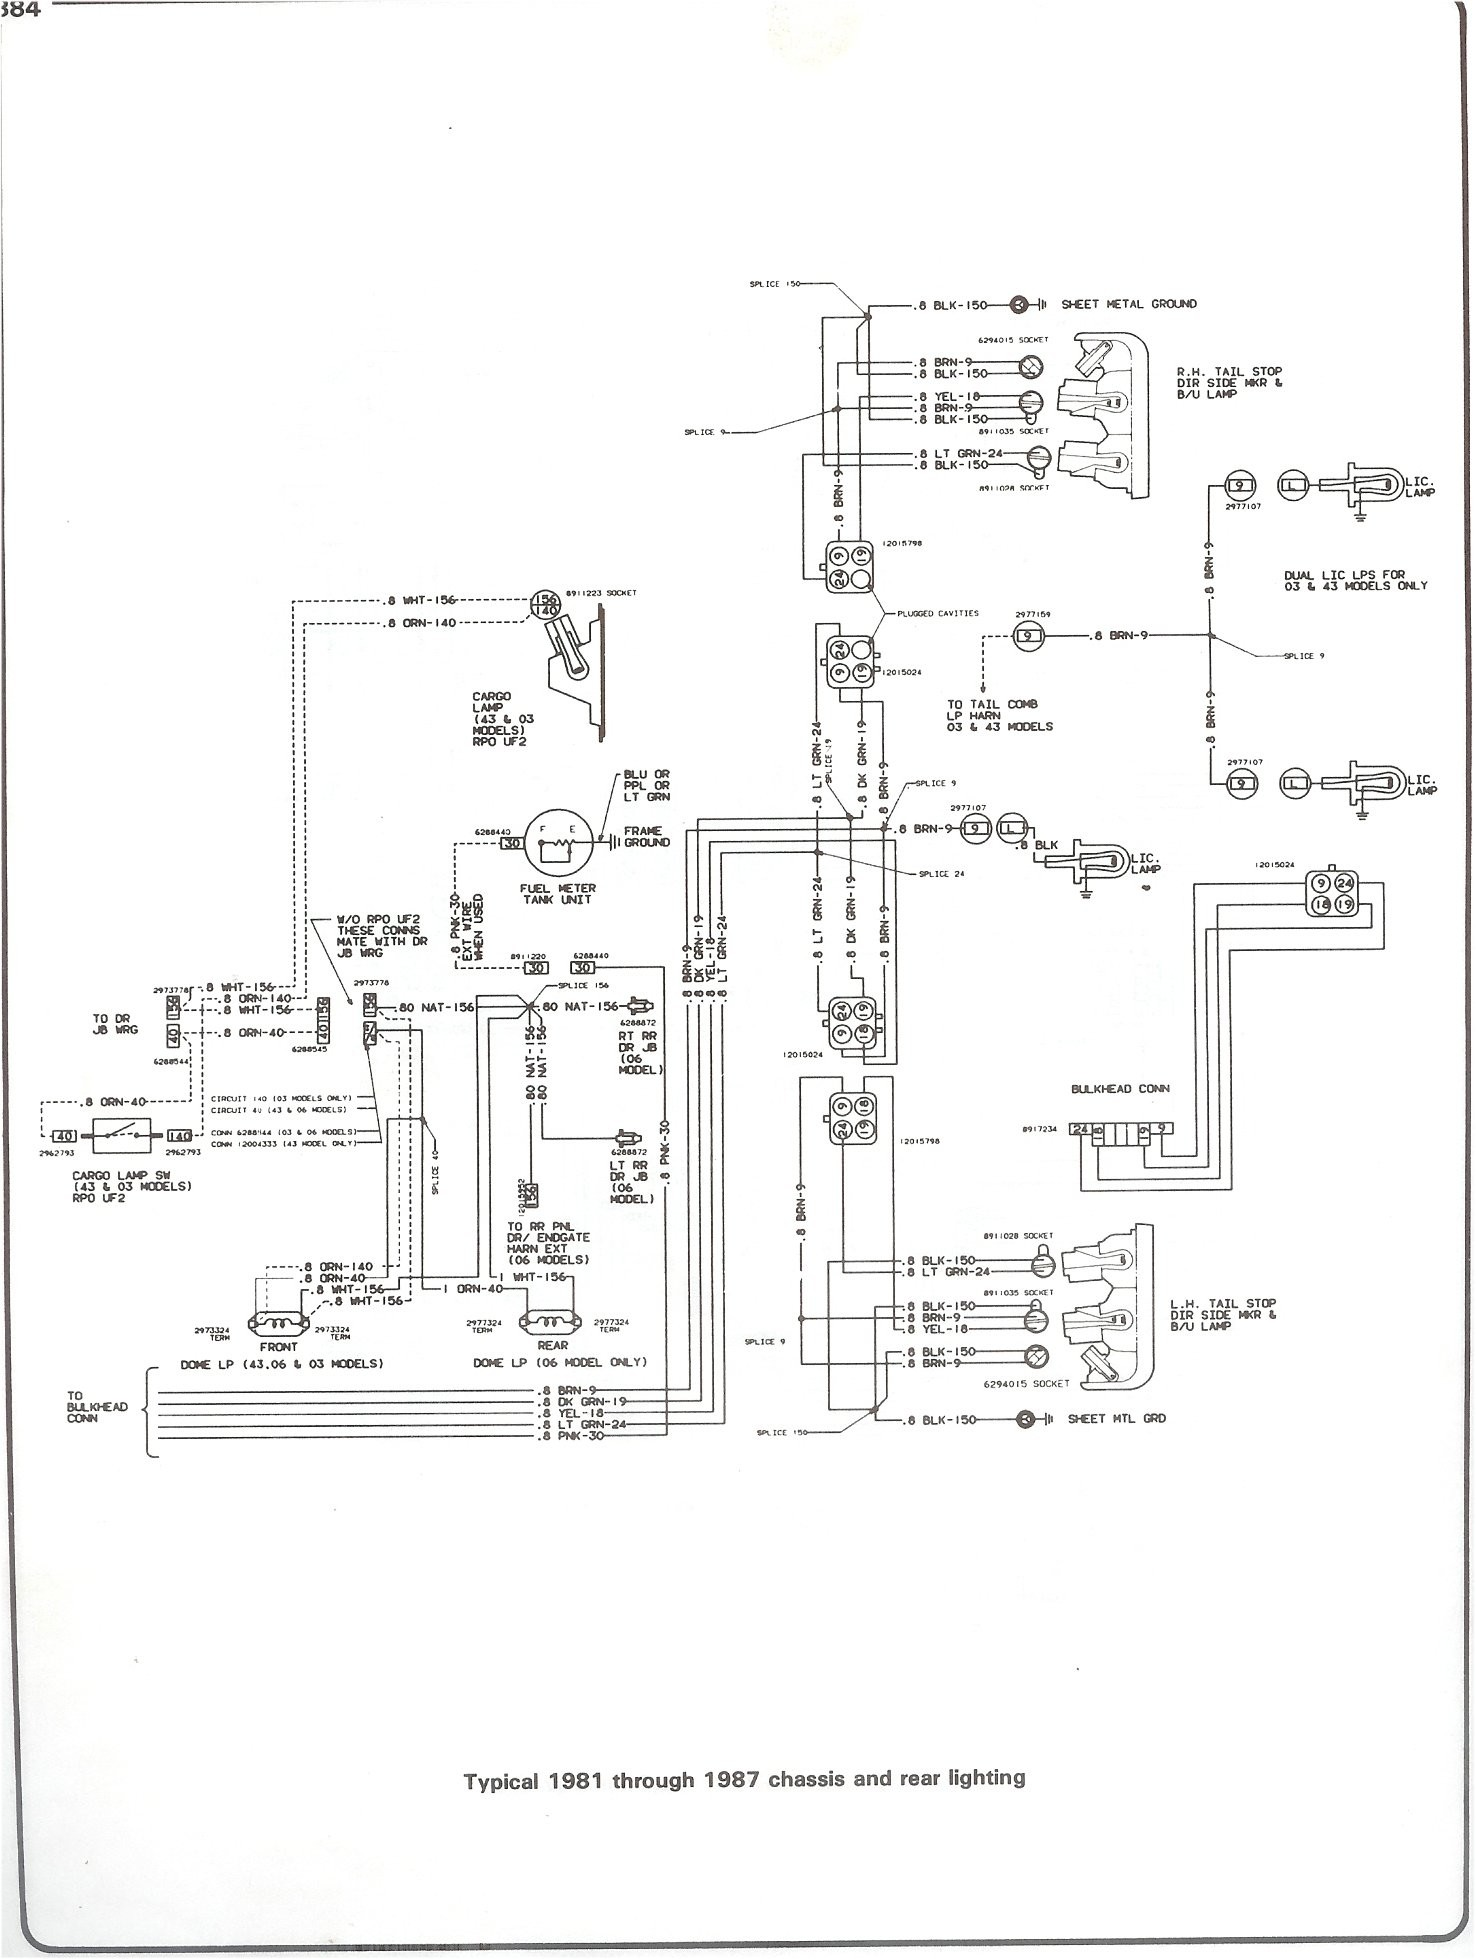 82 Chevy Truck Wiring Diagram - X5fmtl5.casei.store • on chevy truck wiring harness, chevy cooling system, chevy wiring harness diagram, chevy solenoid wiring, 1994 gm radio schematics, chevy blazer wiring diagram, chevy starter wiring diagram, chevy starter schematics, chevy rear end schematics, chevy coil wiring diagram, chevy truck wiring diagram, chevy 1500 wiring diagram, chevy fuel pump wiring diagram, chevy silverado wiring harness, chevrolet schematics, chevy s10 wiring diagram, chevy radio wiring, chevy western unimount wiring-diagram, chevy wiring color codes, chevy maintenance schedule,